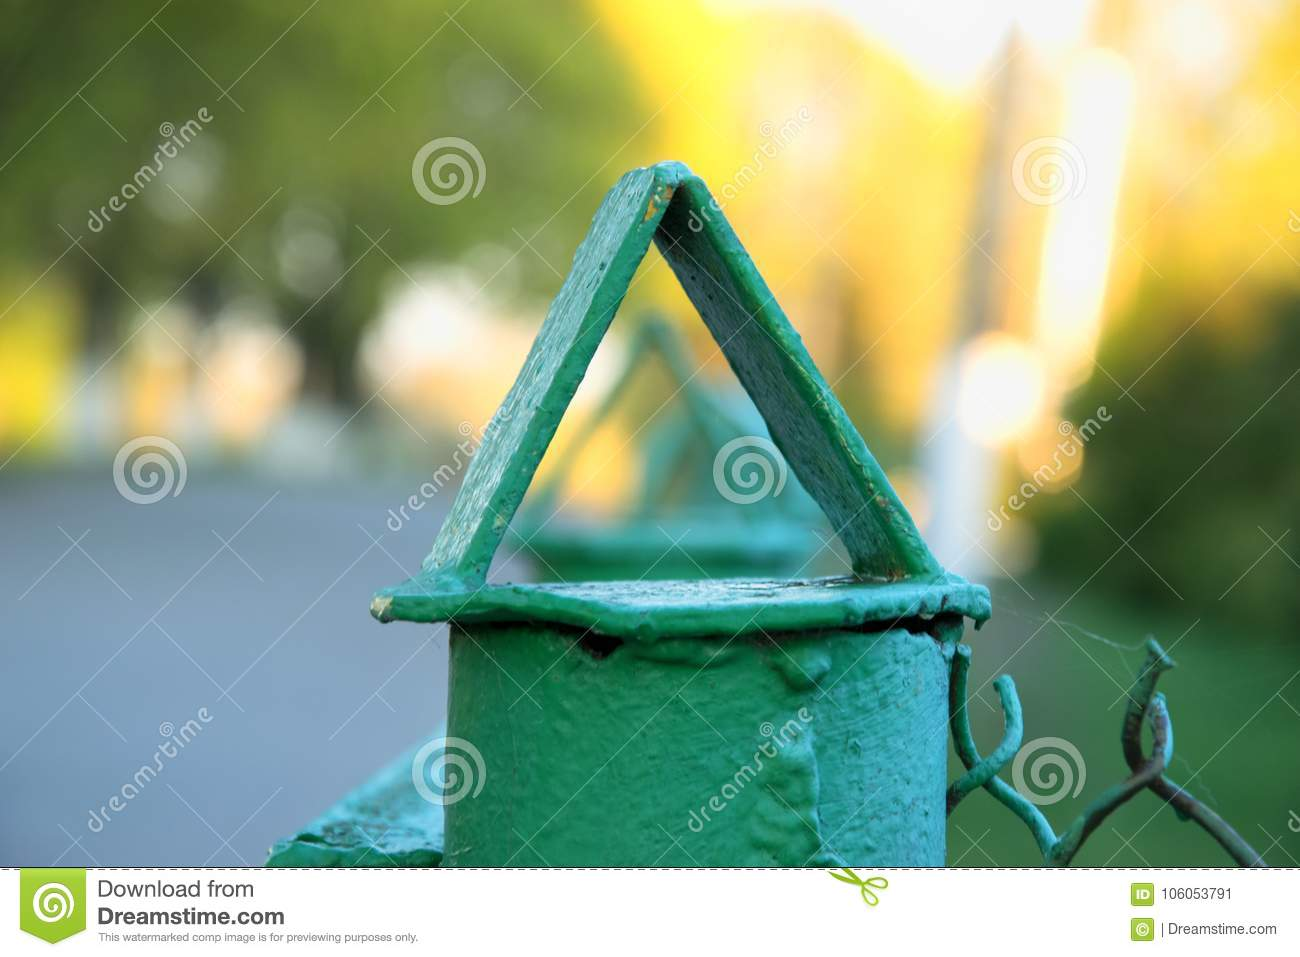 Nice macro photo of tops of the fence, triangle in the triangle,